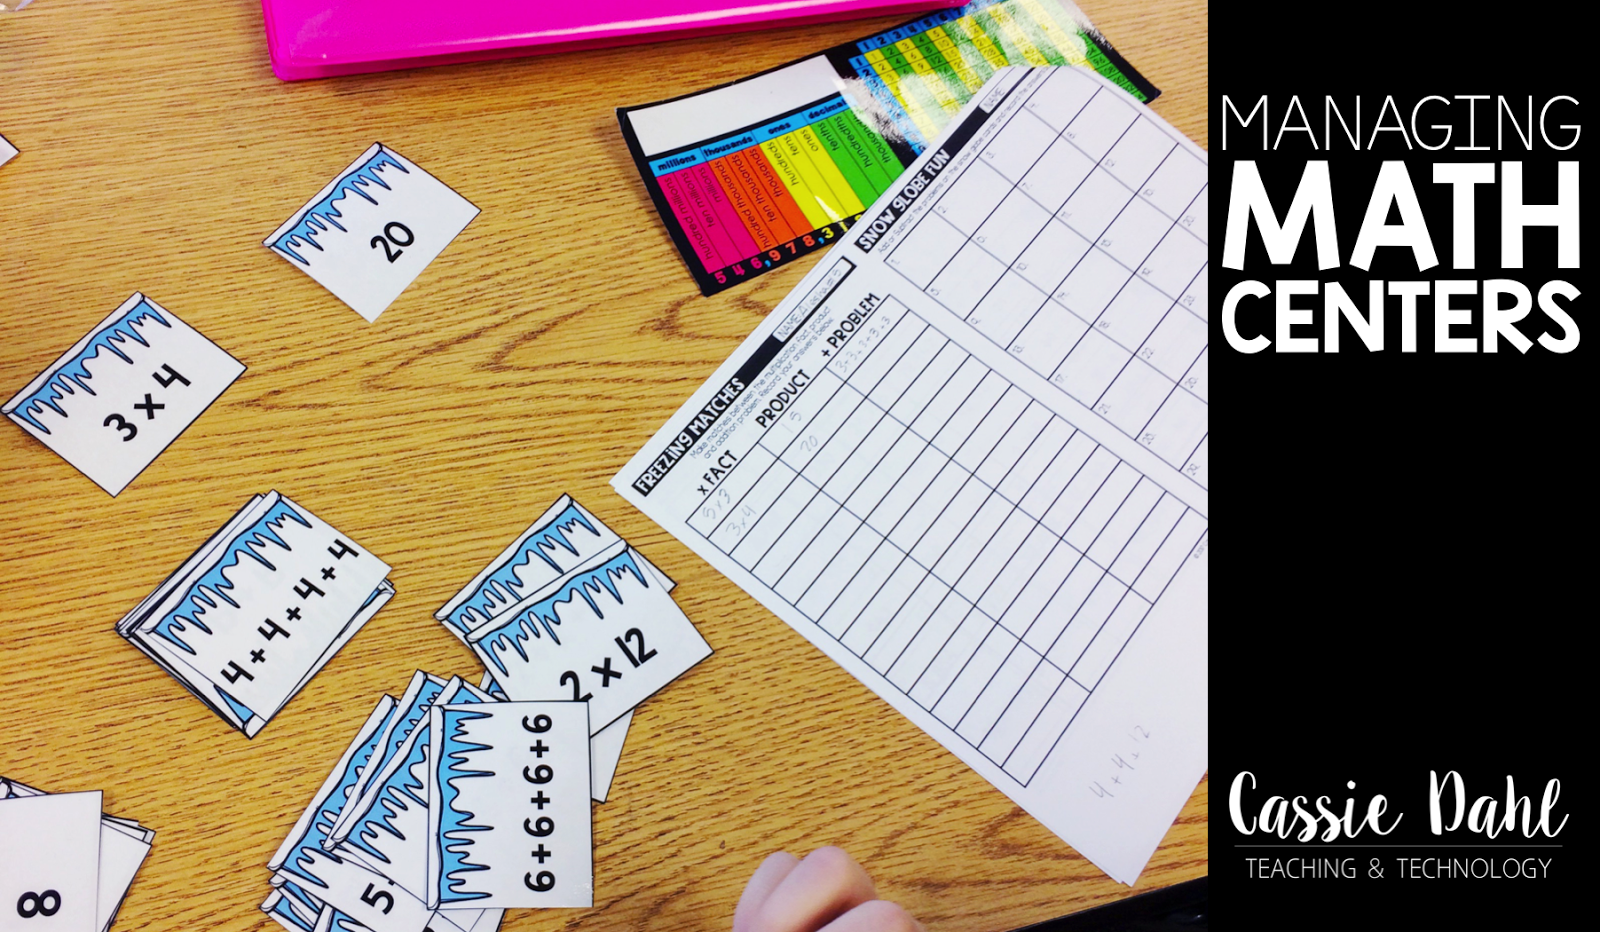 Managing math centers made easy!